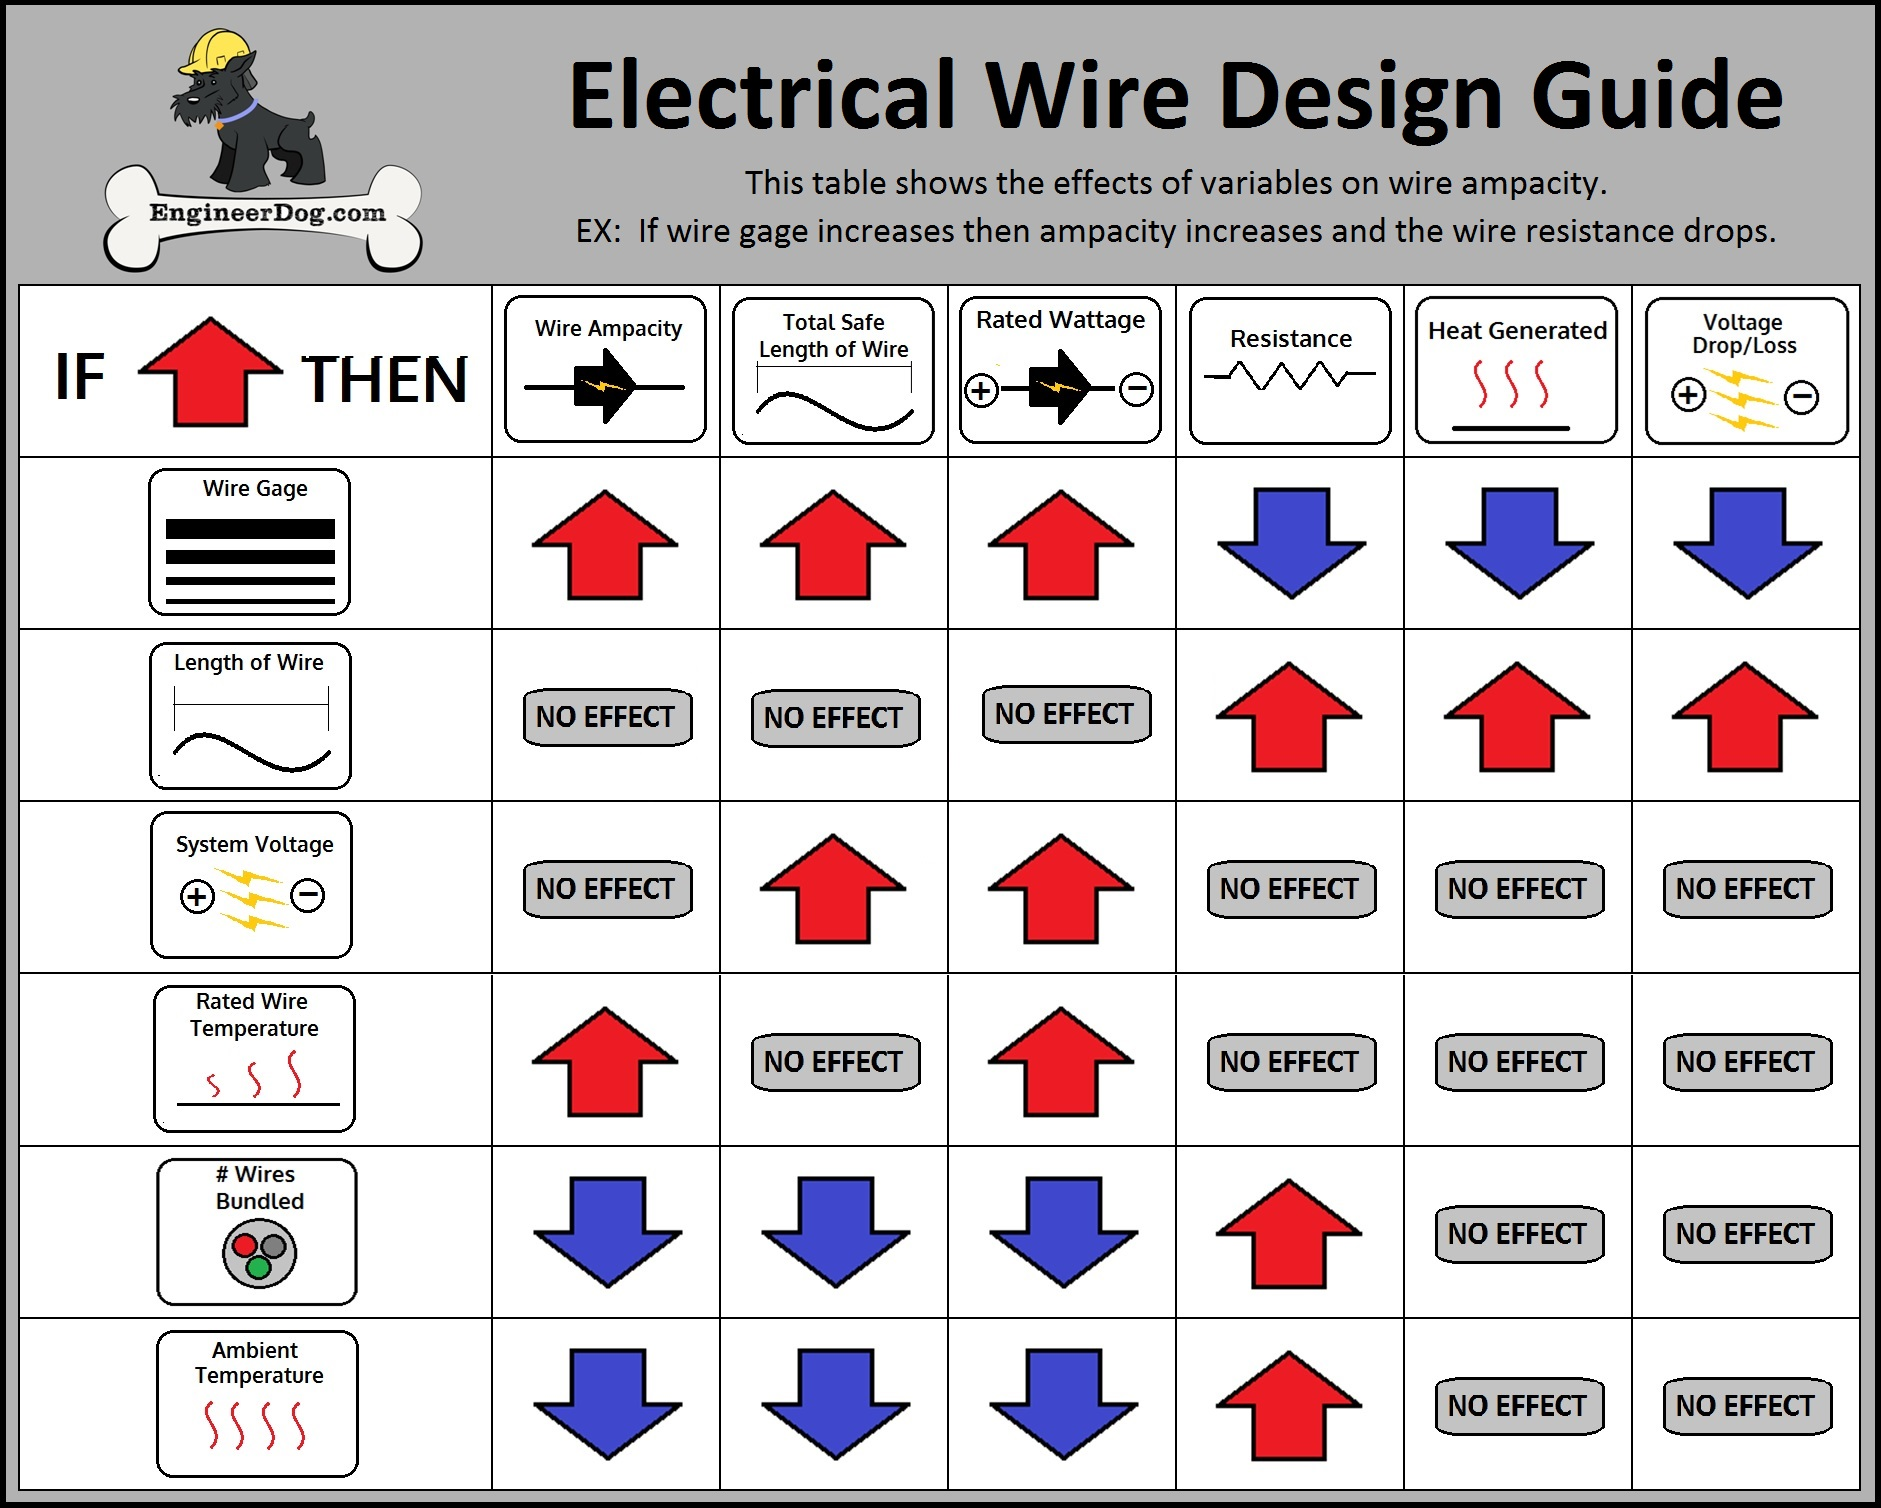 Free electrical wire gauge sizing calculator engineerdog wire sizing guide wire ampacity current carrying capacity greentooth Choice Image